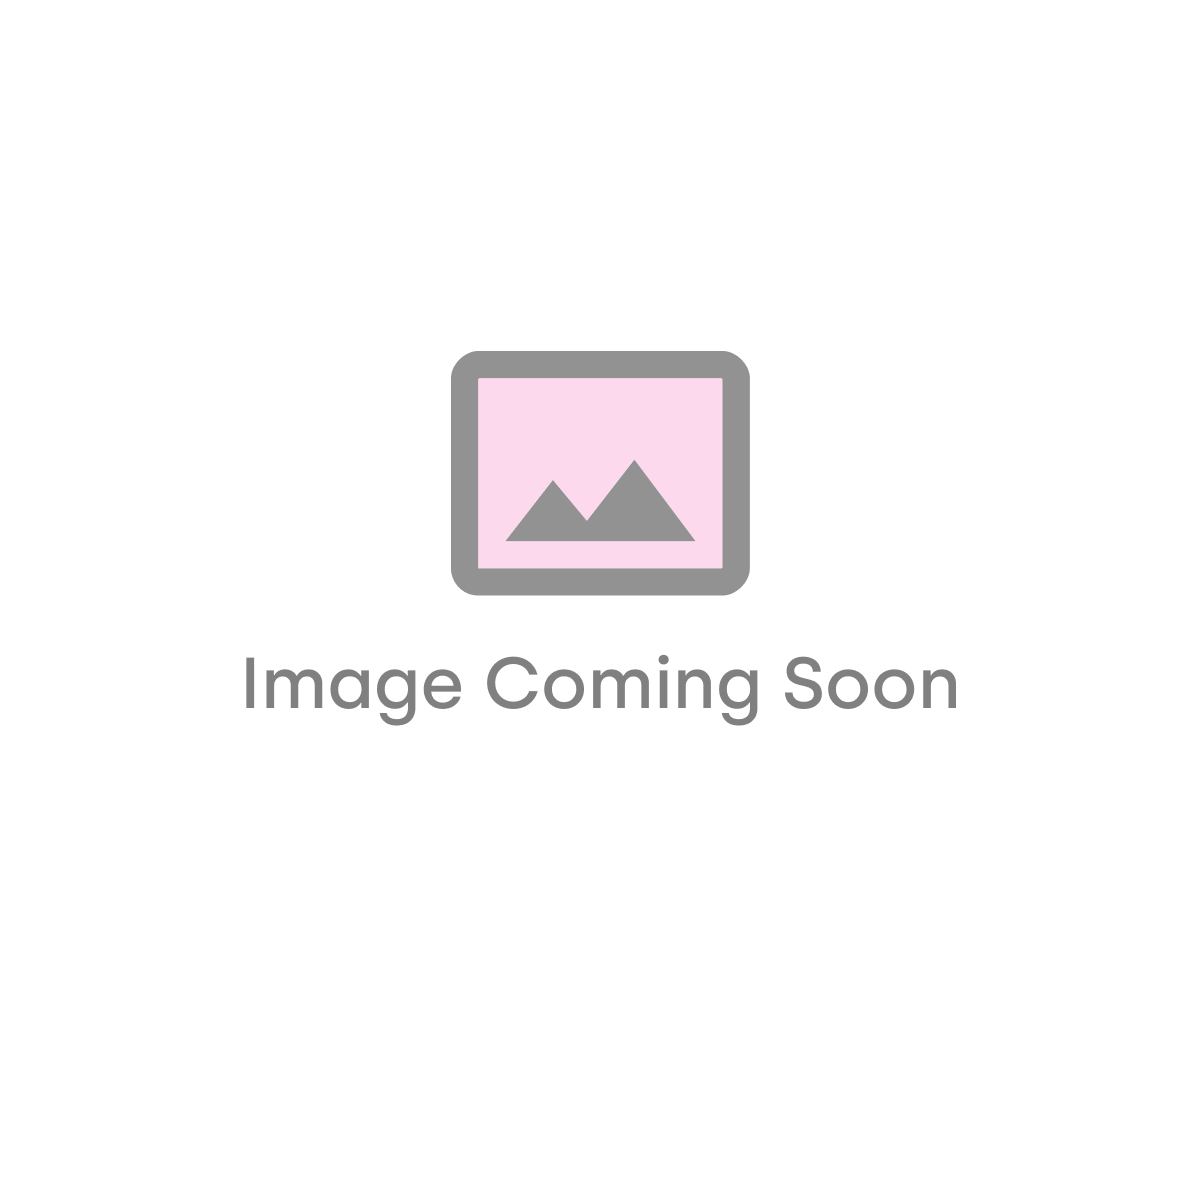 Aquadart 10 800mm Wetroom Panel - Clear Glass (18670)